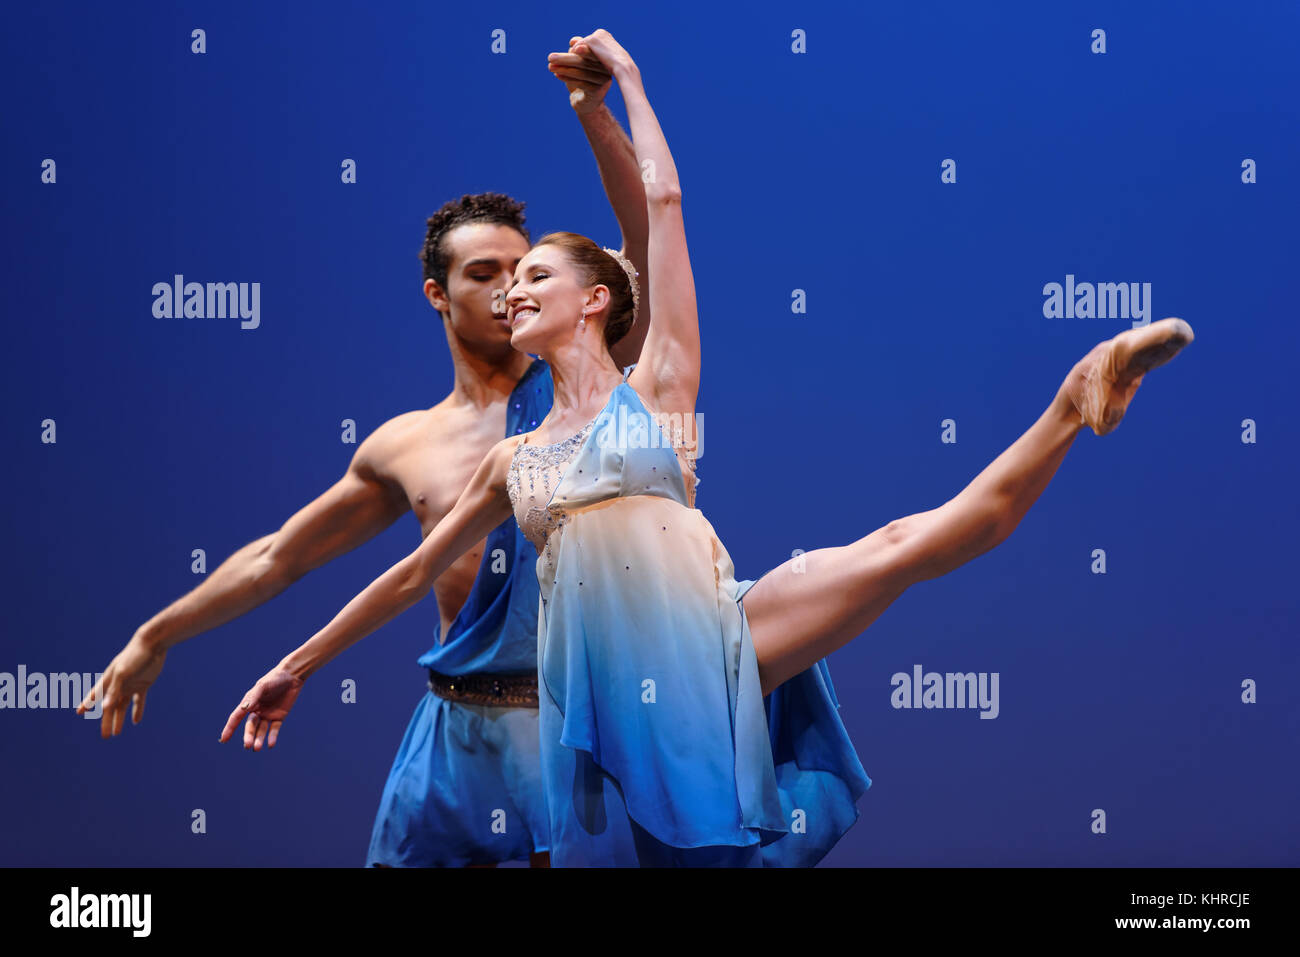 St. Petersburg, Russia - November 16, 2017: Ballet soloists of Mikhailovsky theater Sabina Yapparova and Adrian - Stock Image